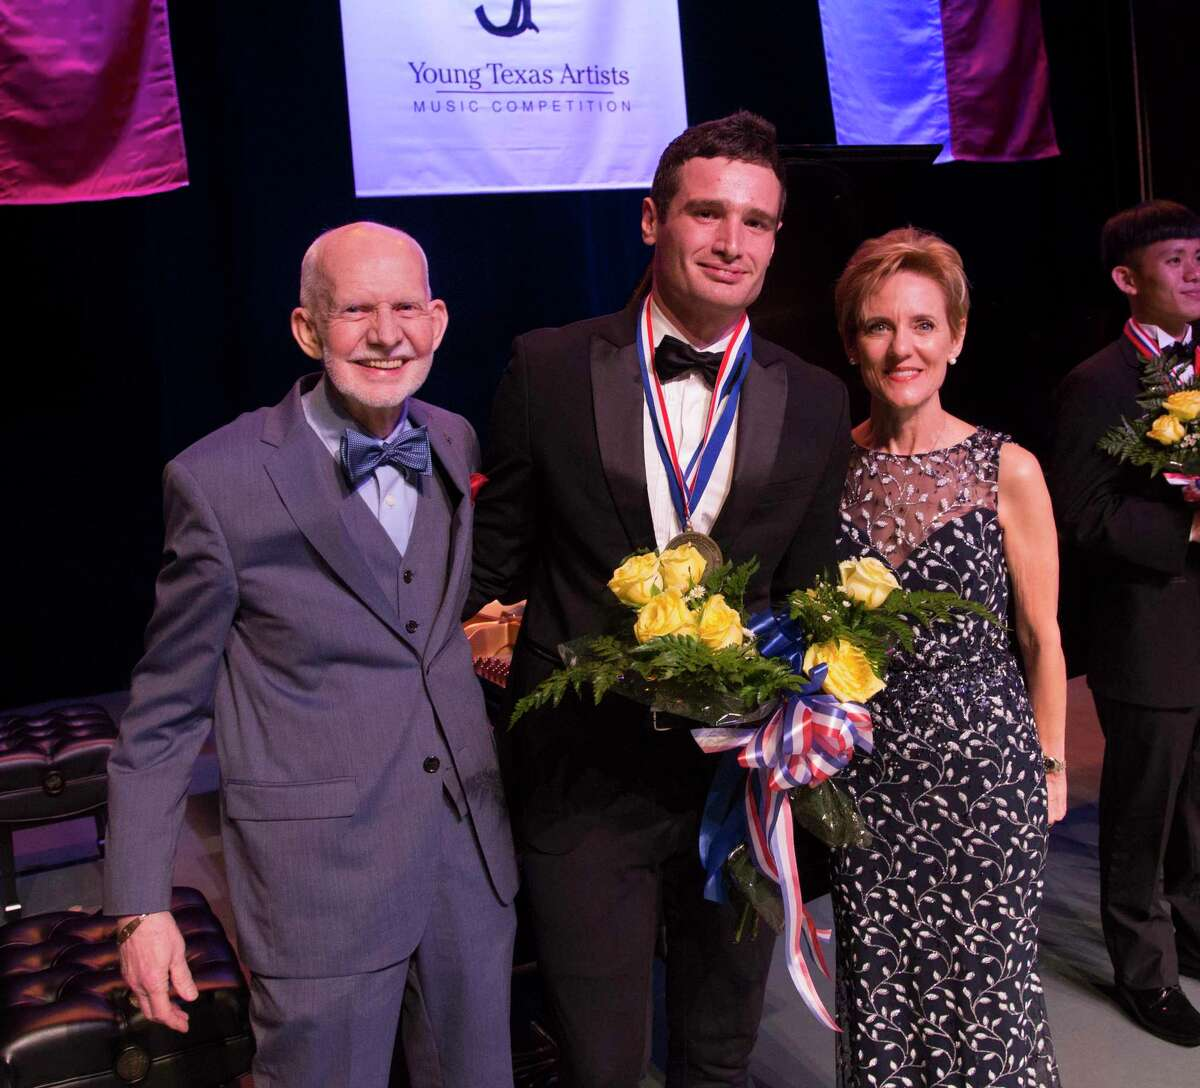 YTA Founder Jim Pokorski, 2019 Grand Prize winner Artem Kuznetsov, and YTA President/CEO Susie Pokorski. Having had to skip the last two competitions and any associated fundraising, the Campaign for YoungTexas Artists was officially launched, with the goal of raising $250,000 by June 30.